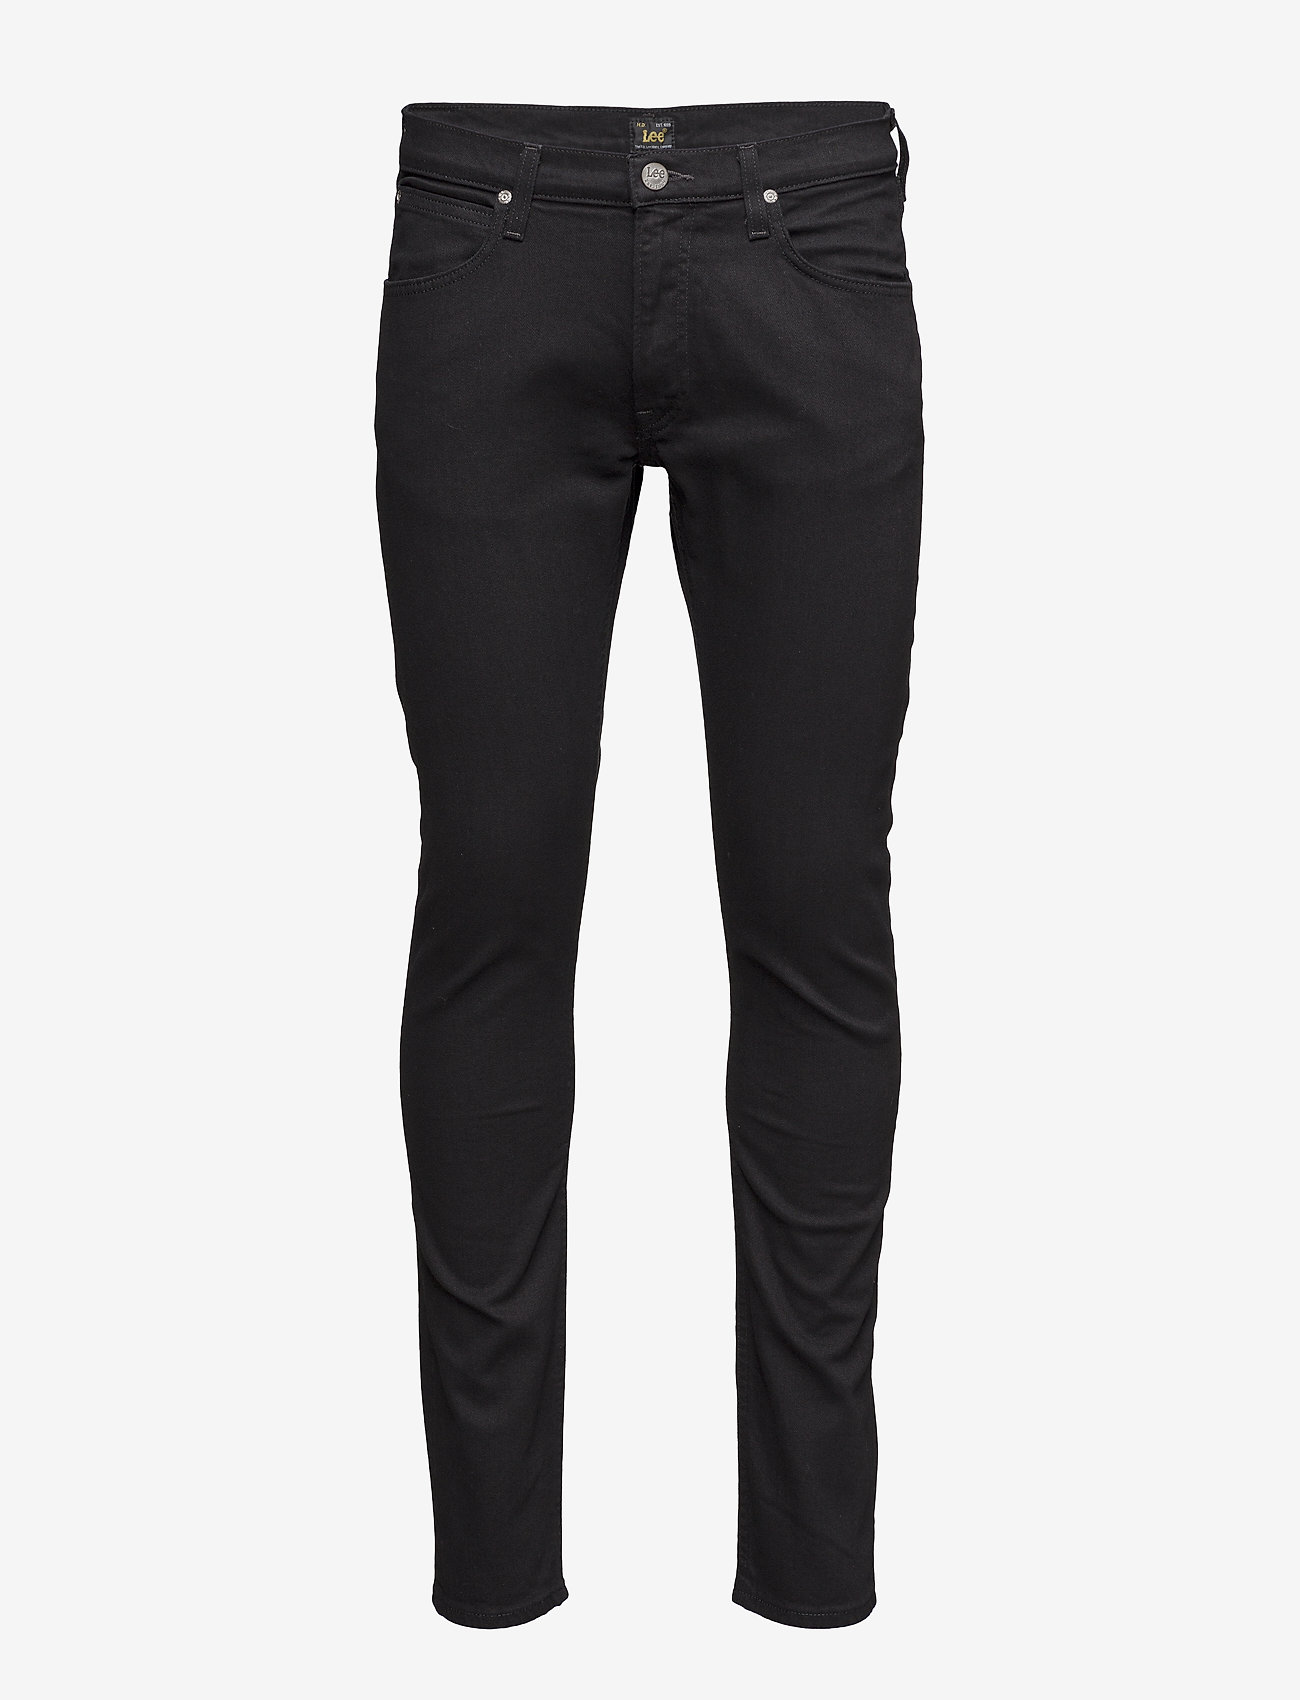 Lee Jeans - LUKE - slim jeans - clean black - 0